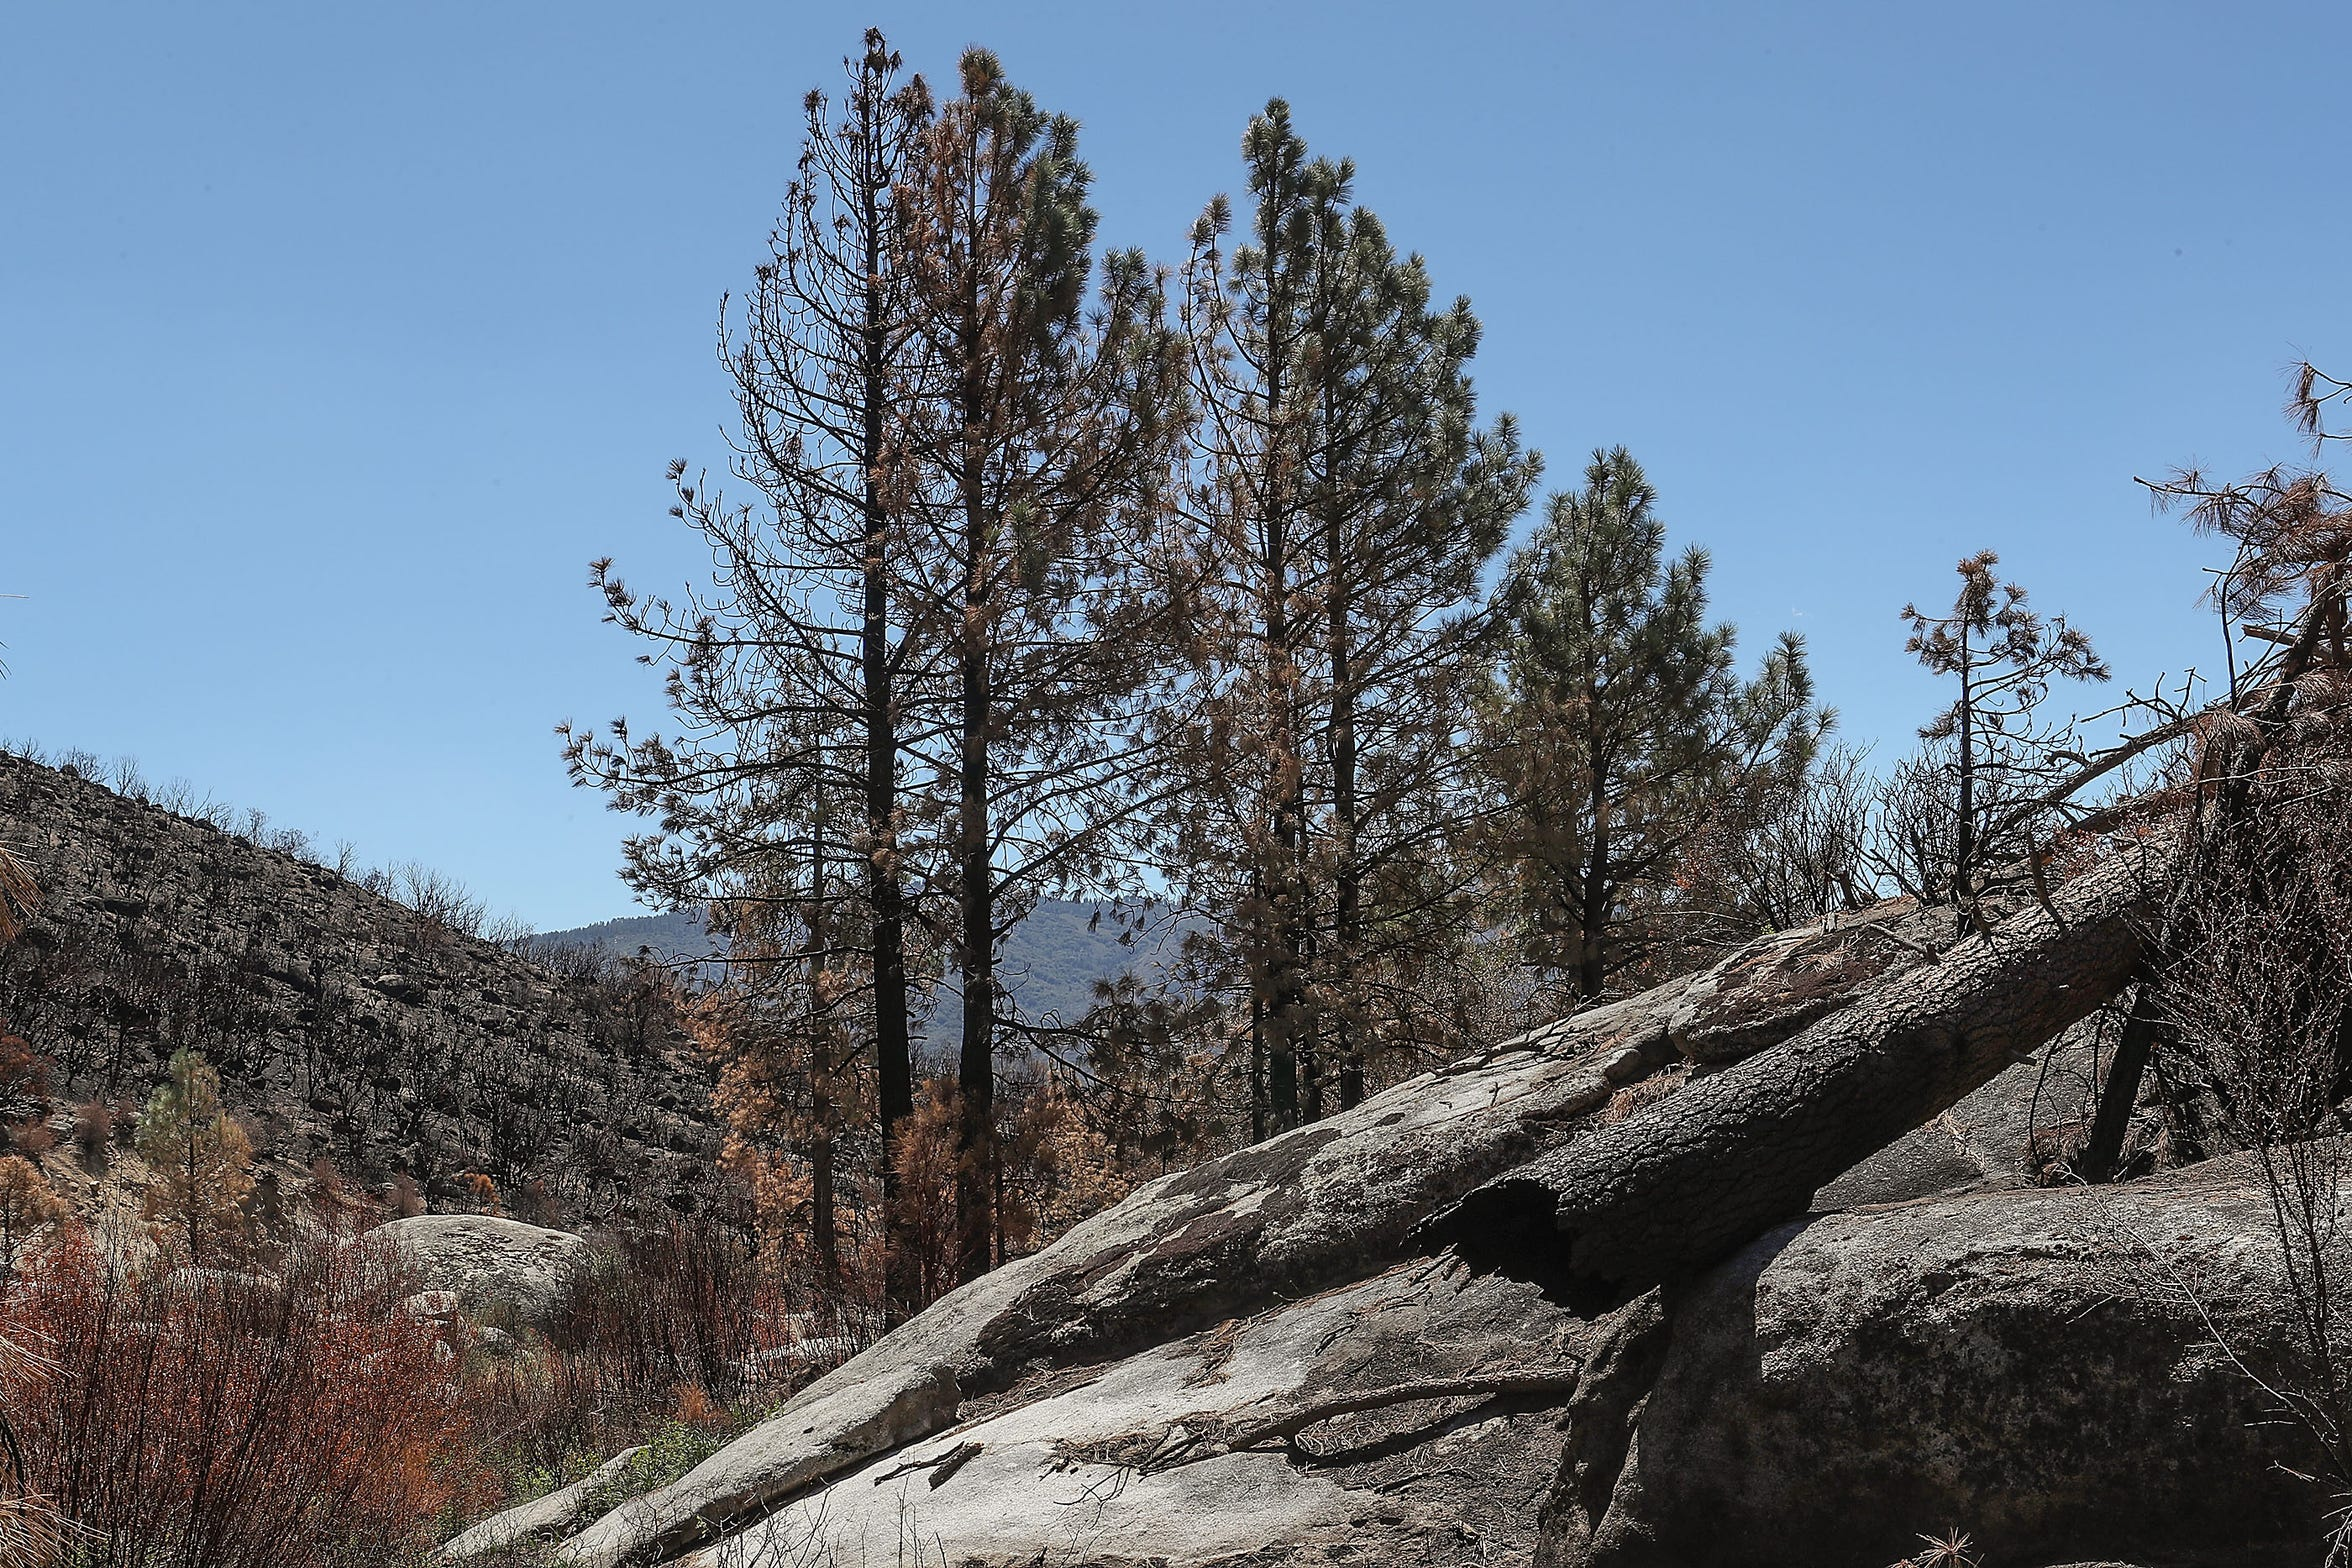 This patch of conifers was damaged in a heavily-burned area of the Cranston Fire in the San Jacinto Wilderness.